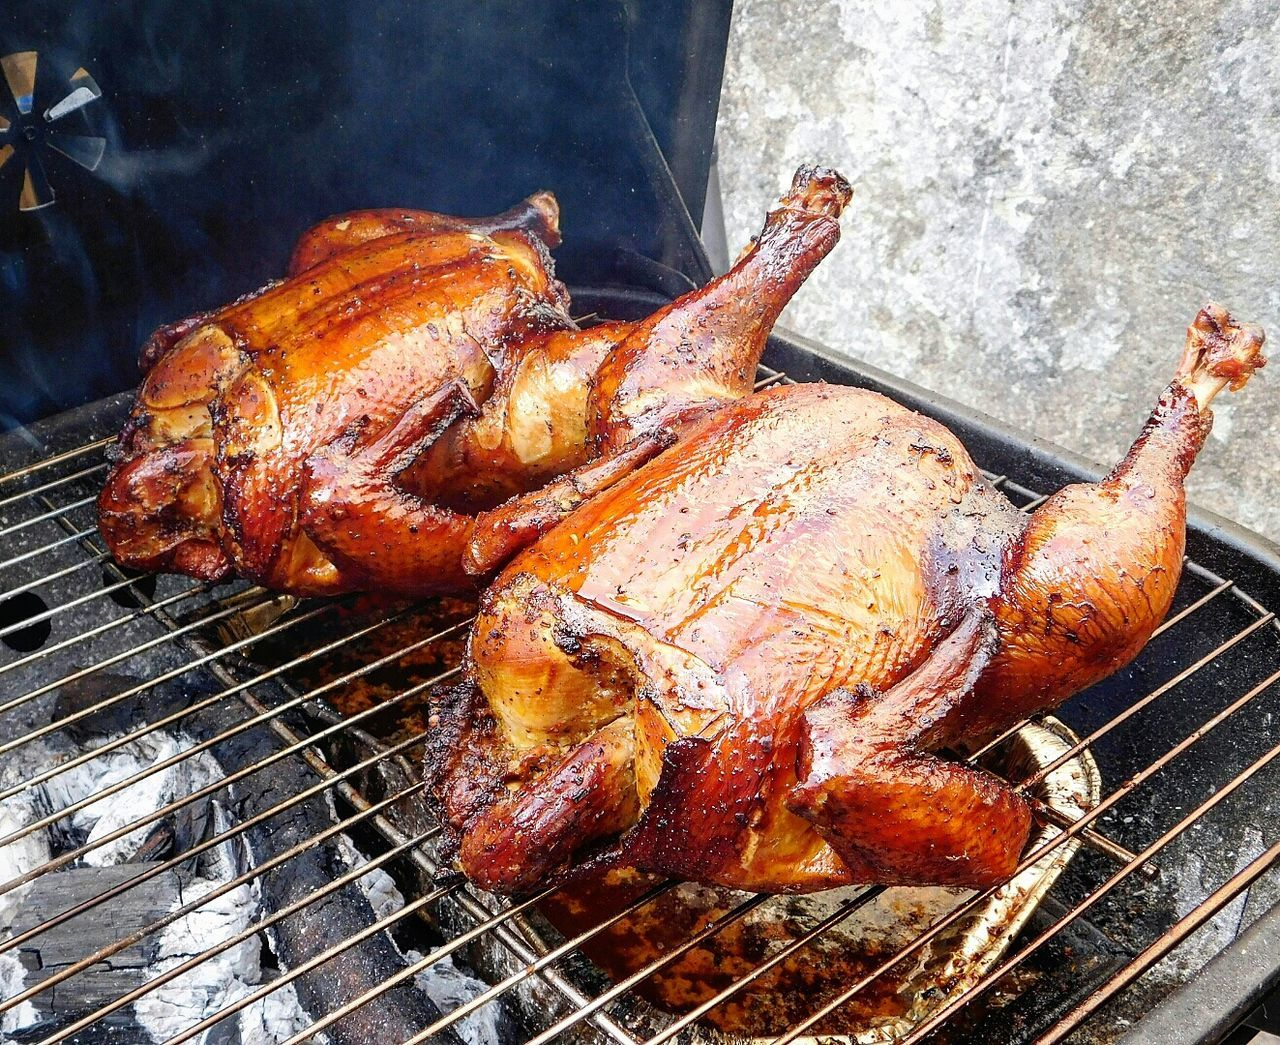 Chickens Smoked Smokedchicken Smoked Chicken